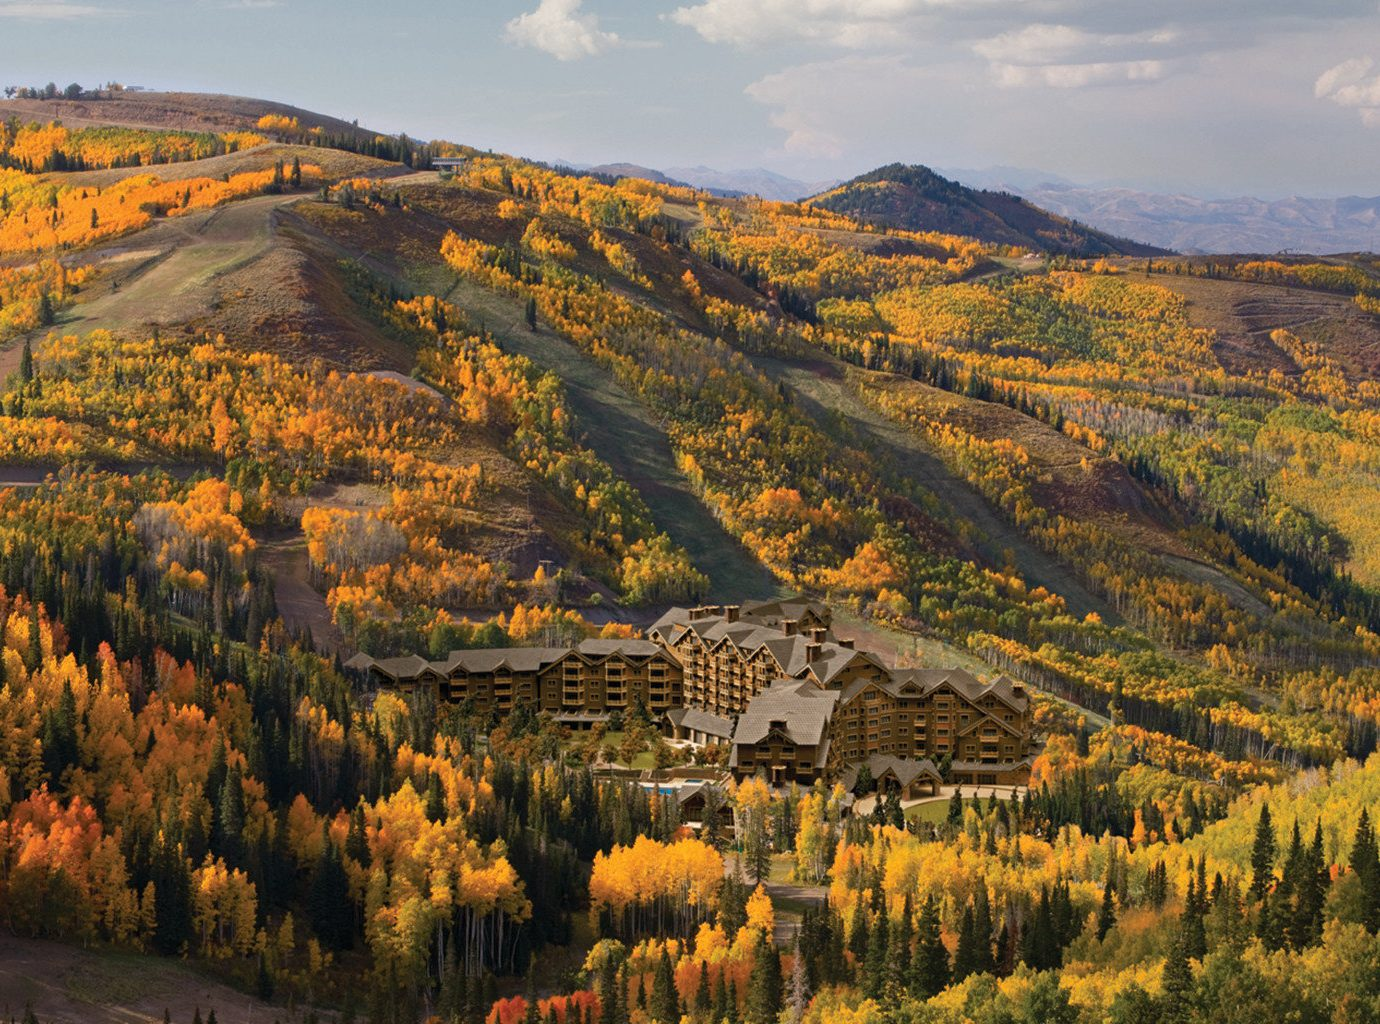 Fall Travel Mountains + Skiing National Parks Outdoors + Adventure Trip Ideas mountain sky Nature outdoor canyon valley grass mountainous landforms tree wilderness ecosystem autumn season hill agriculture leaf landscape rural area plateau aerial photography flower mountain range overlooking hillside lush